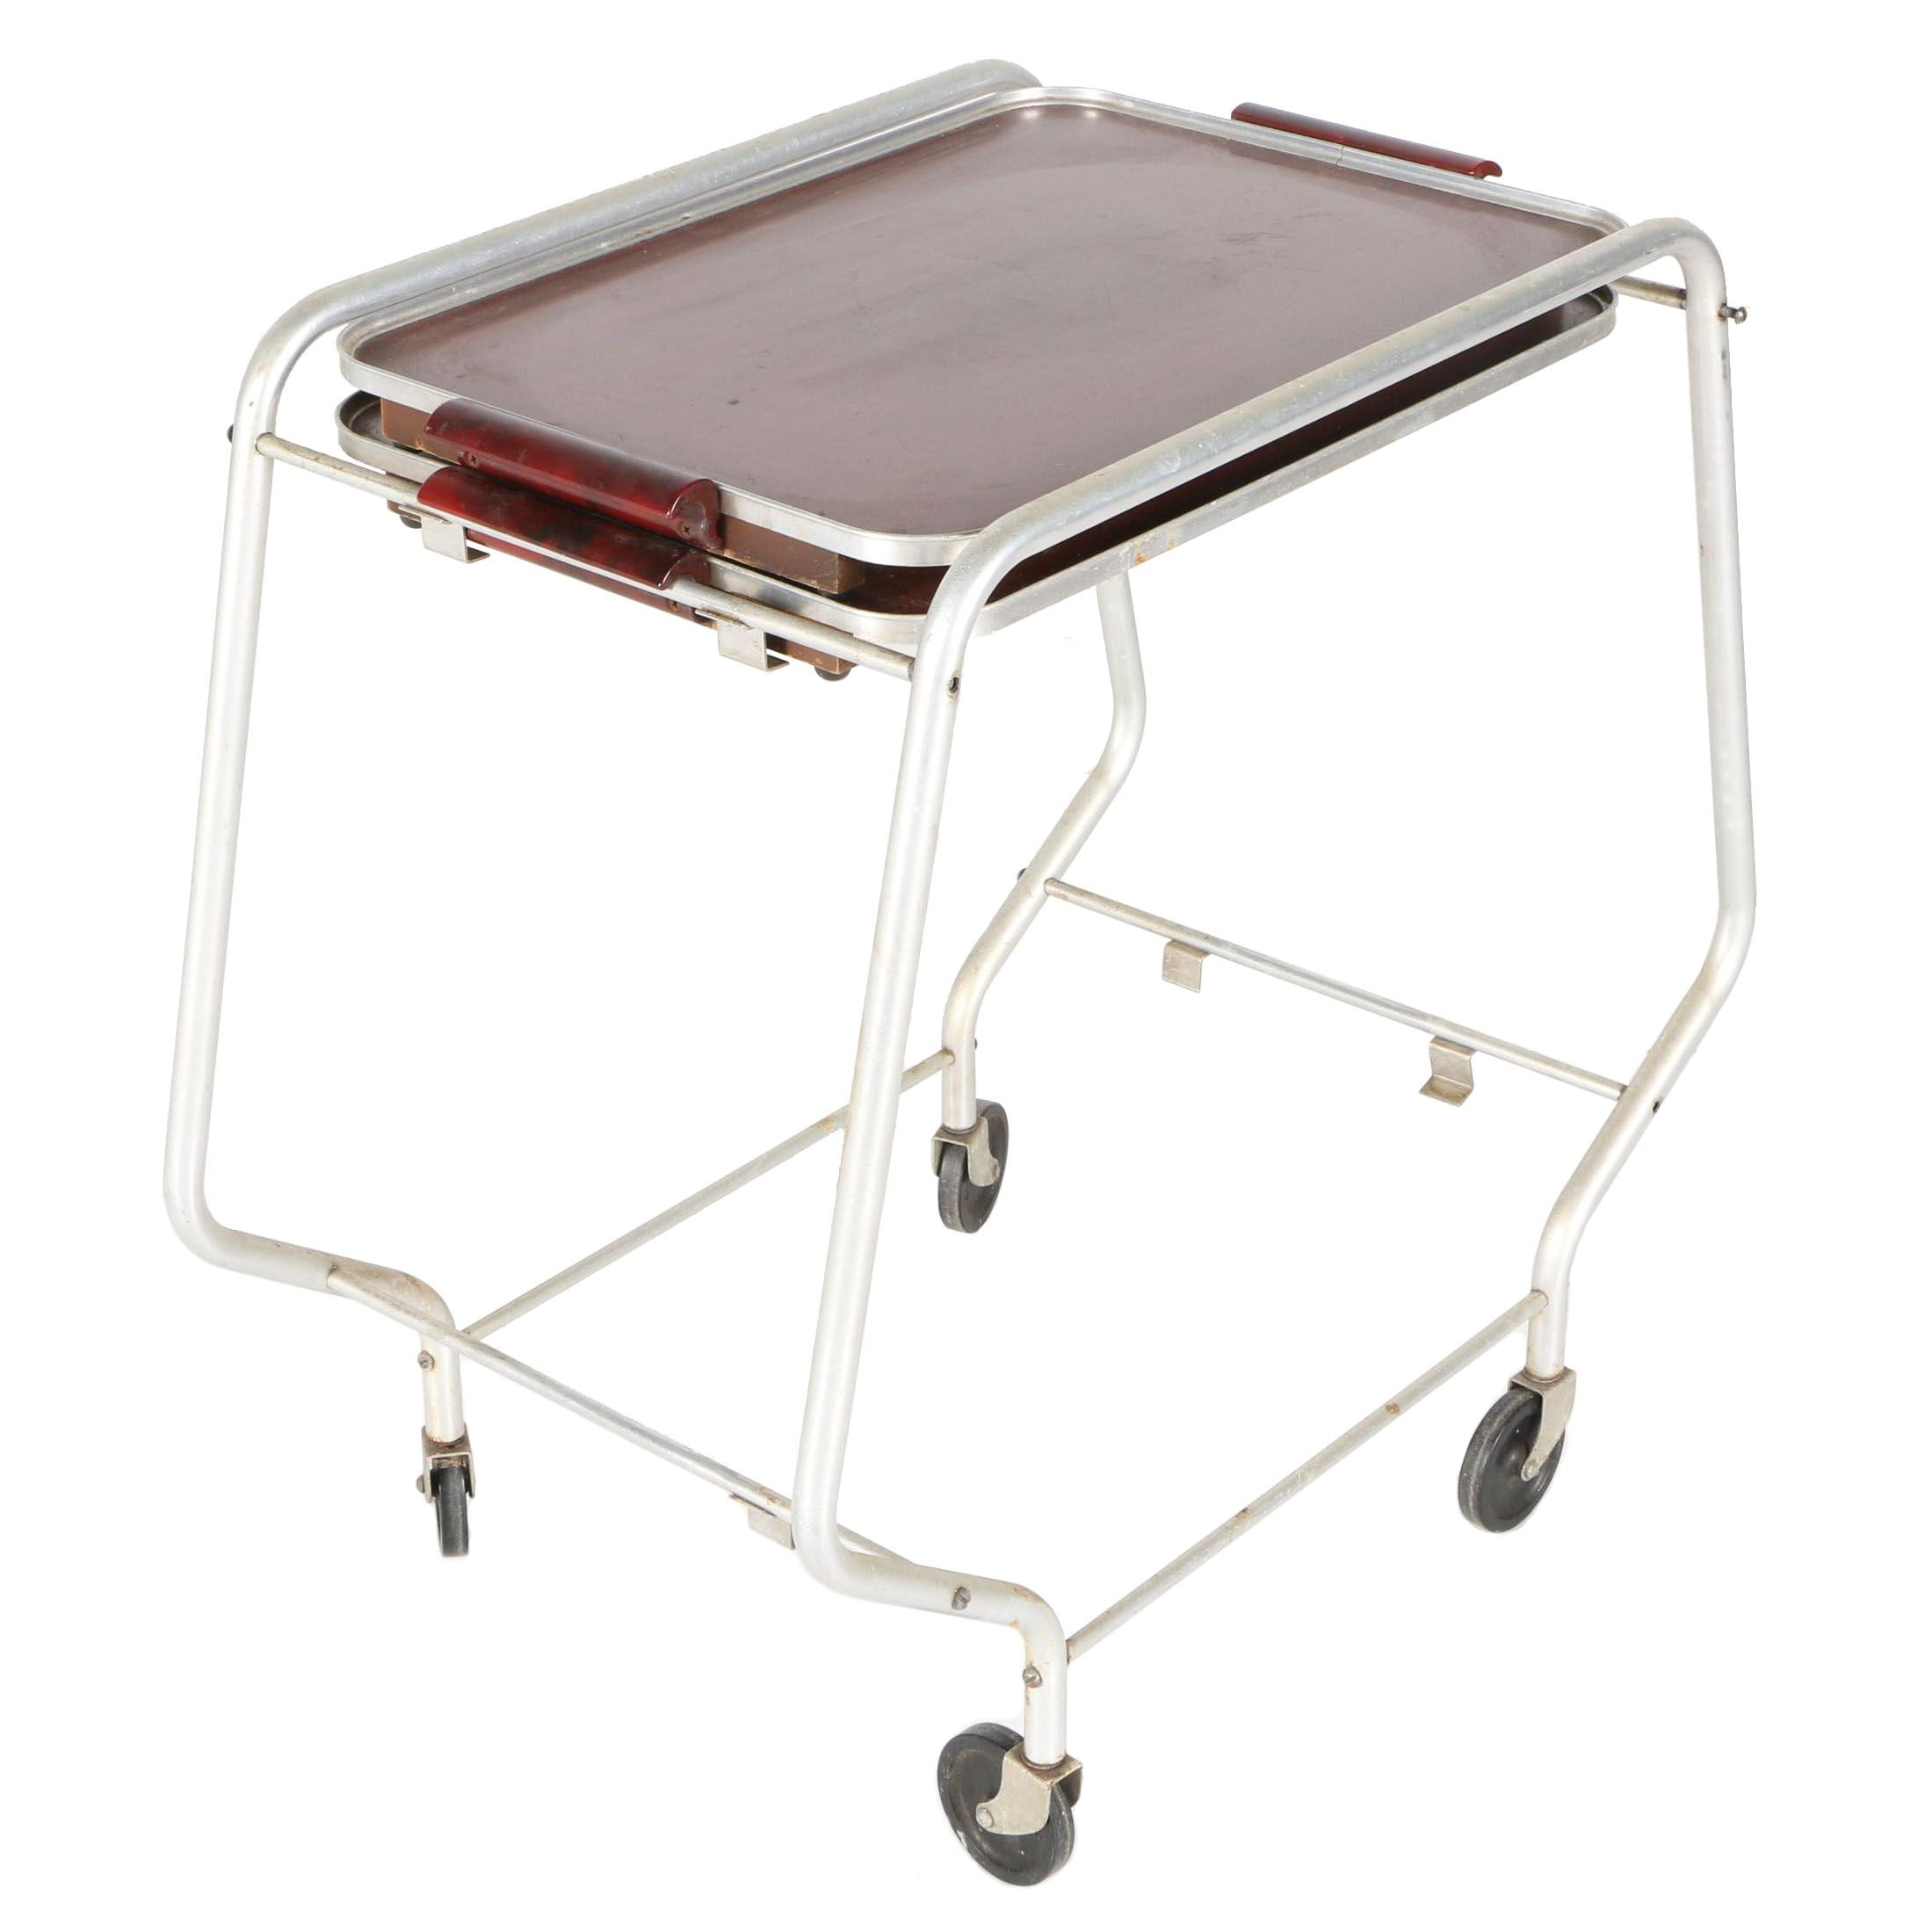 Butler Tray Bar Cart With Bakelite and Aluminum Frame